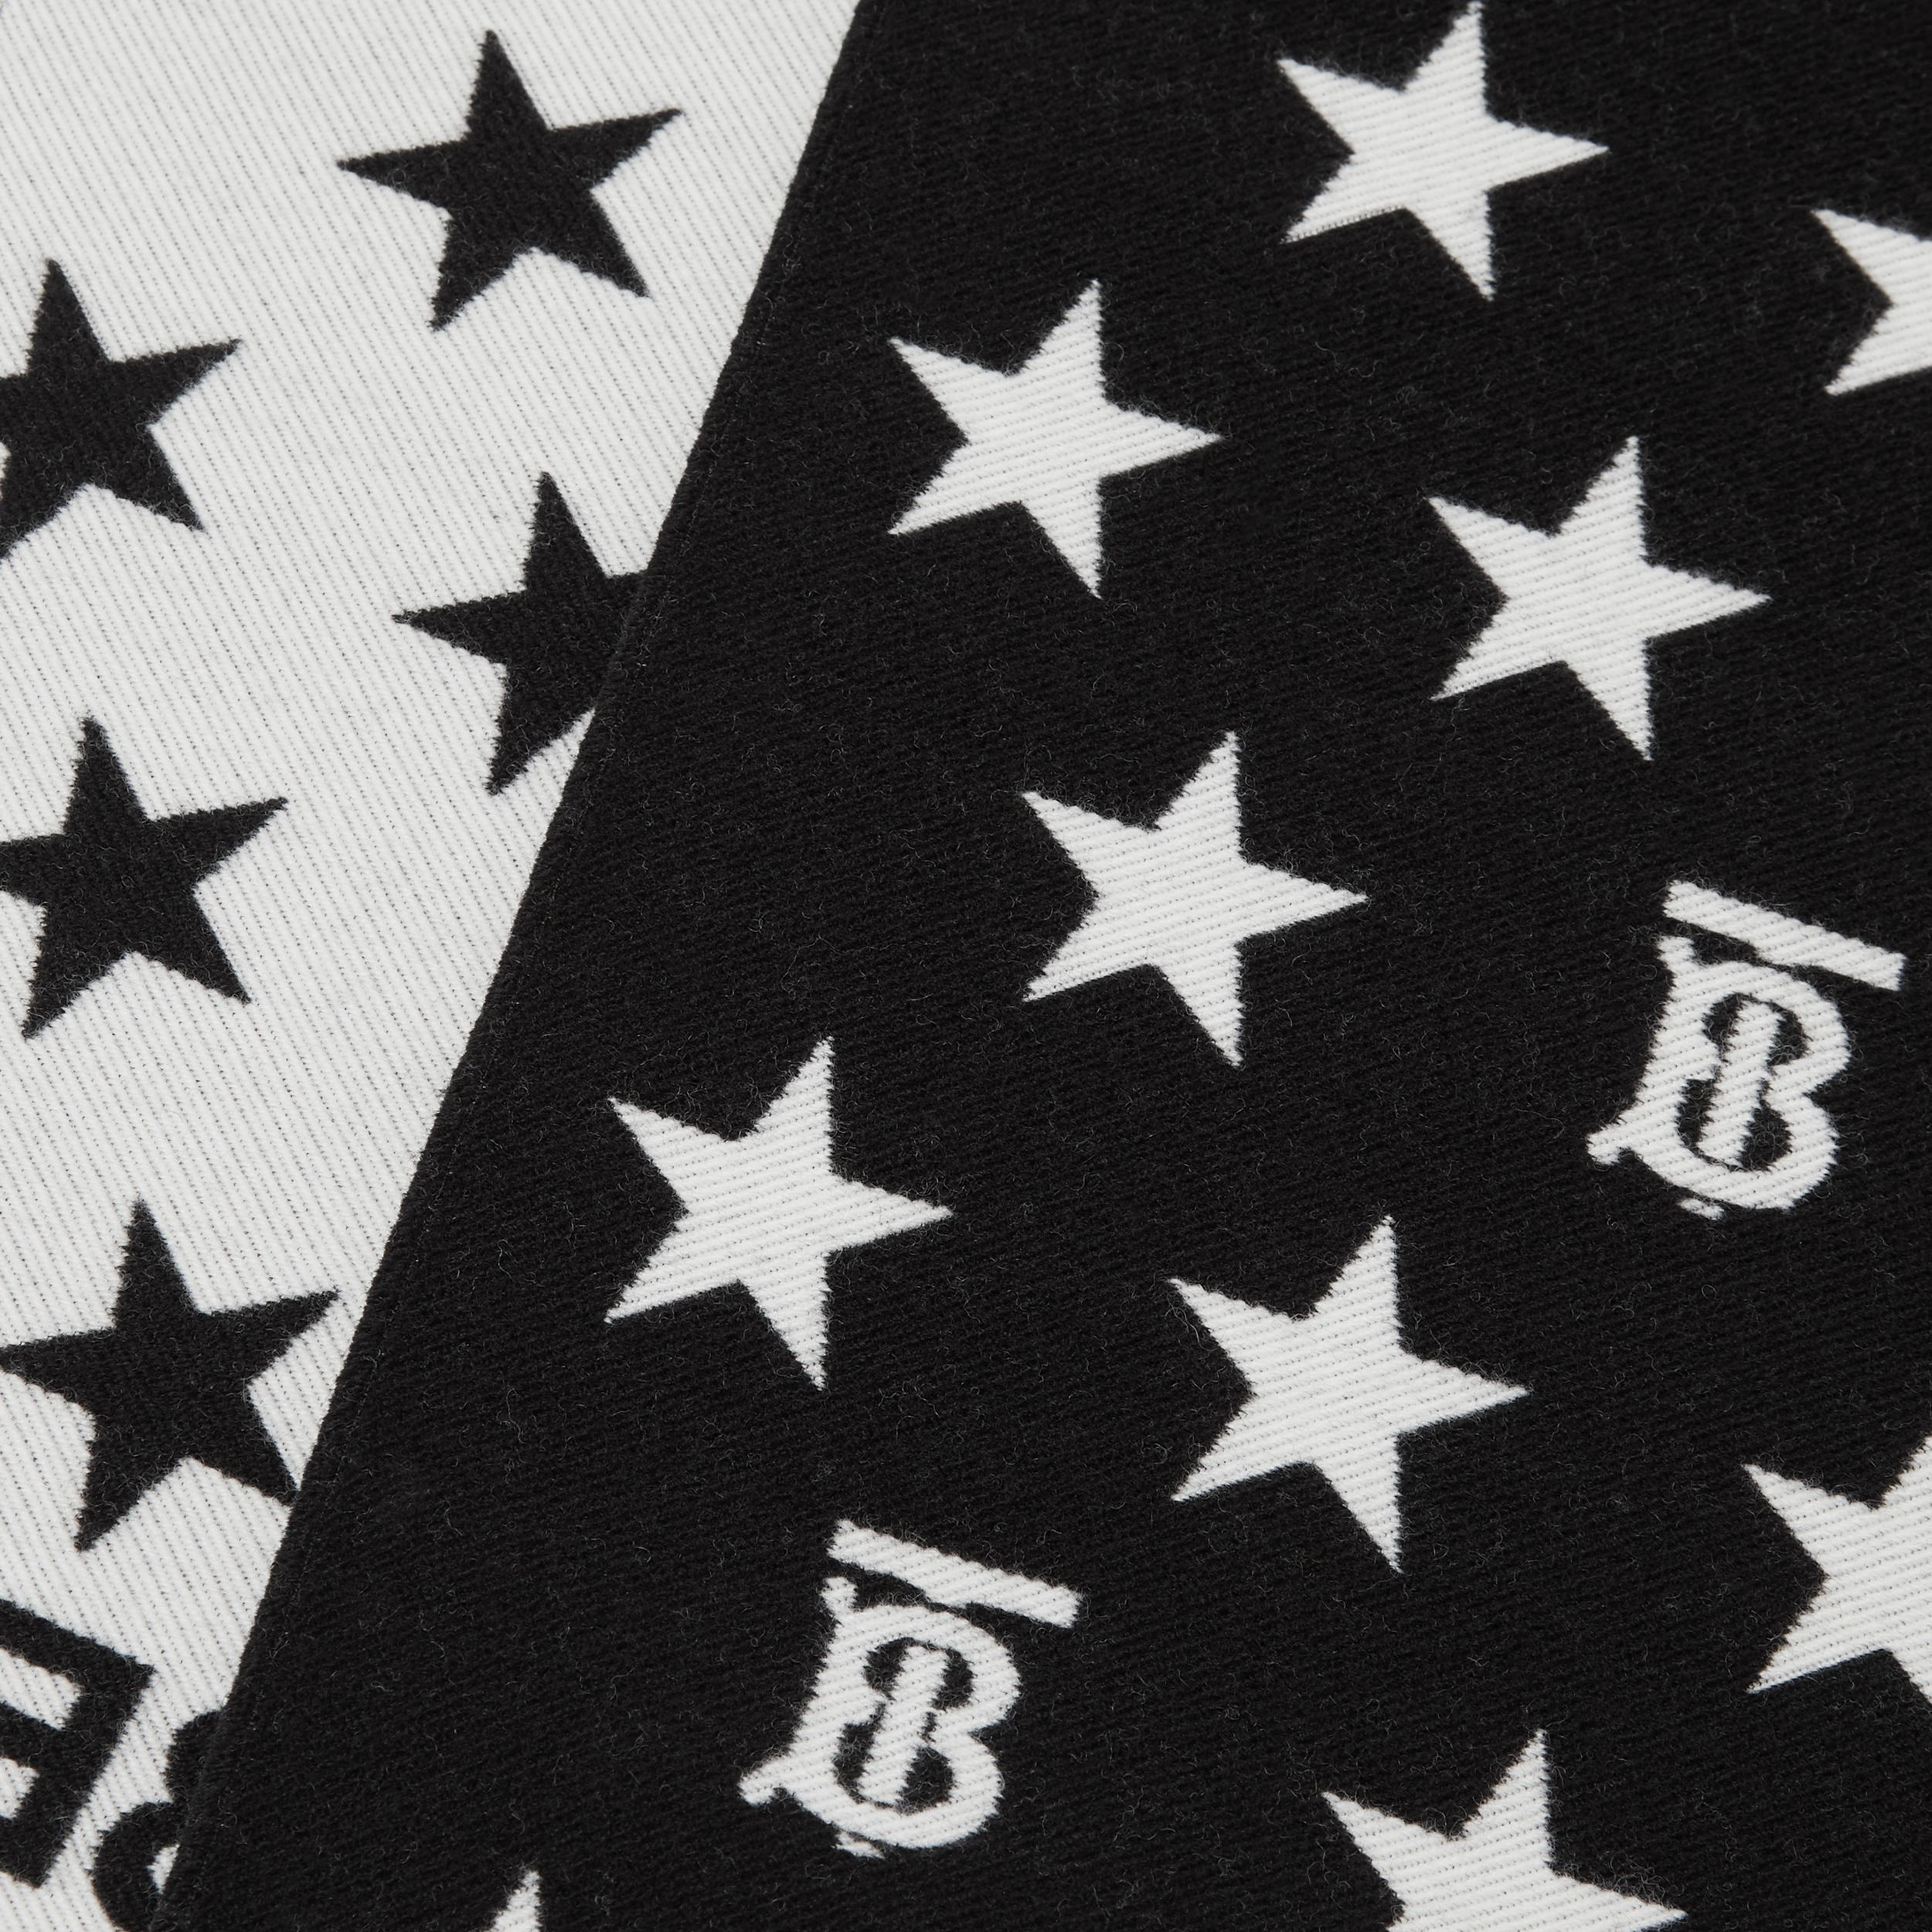 Star and Monogram Motif Wool Cotton Jacquard Scarf in Black - Children | Burberry Australia - 2